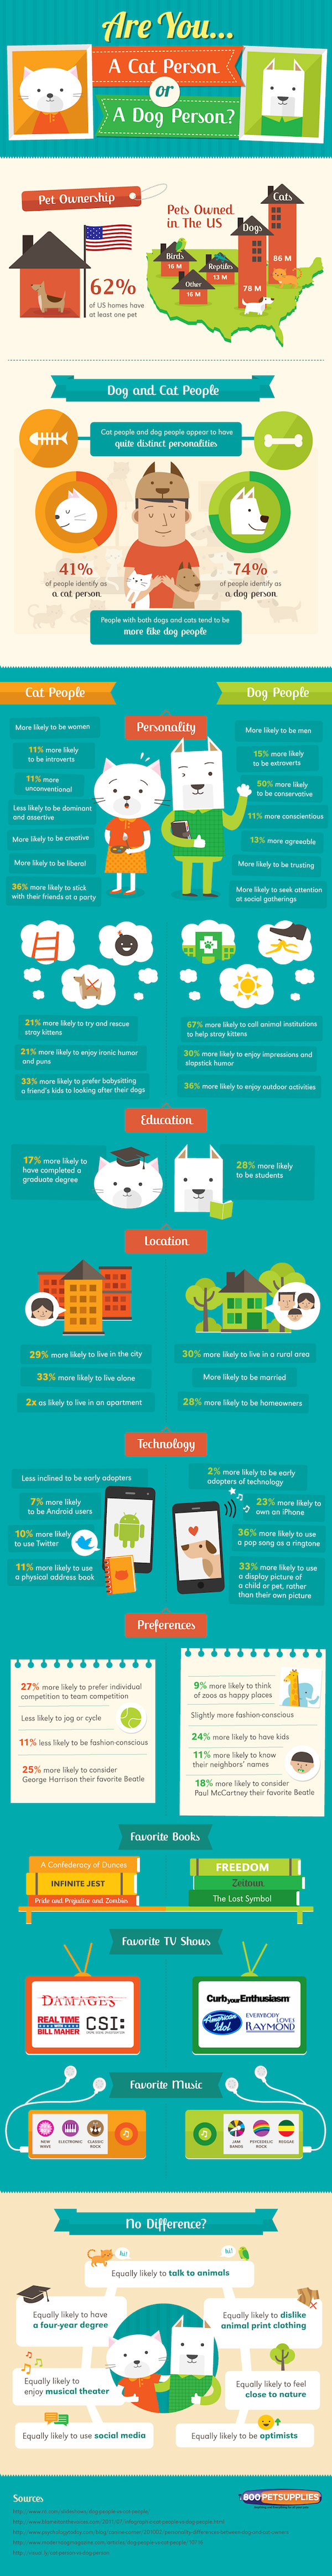 dog-or-cat-person-infographic copy